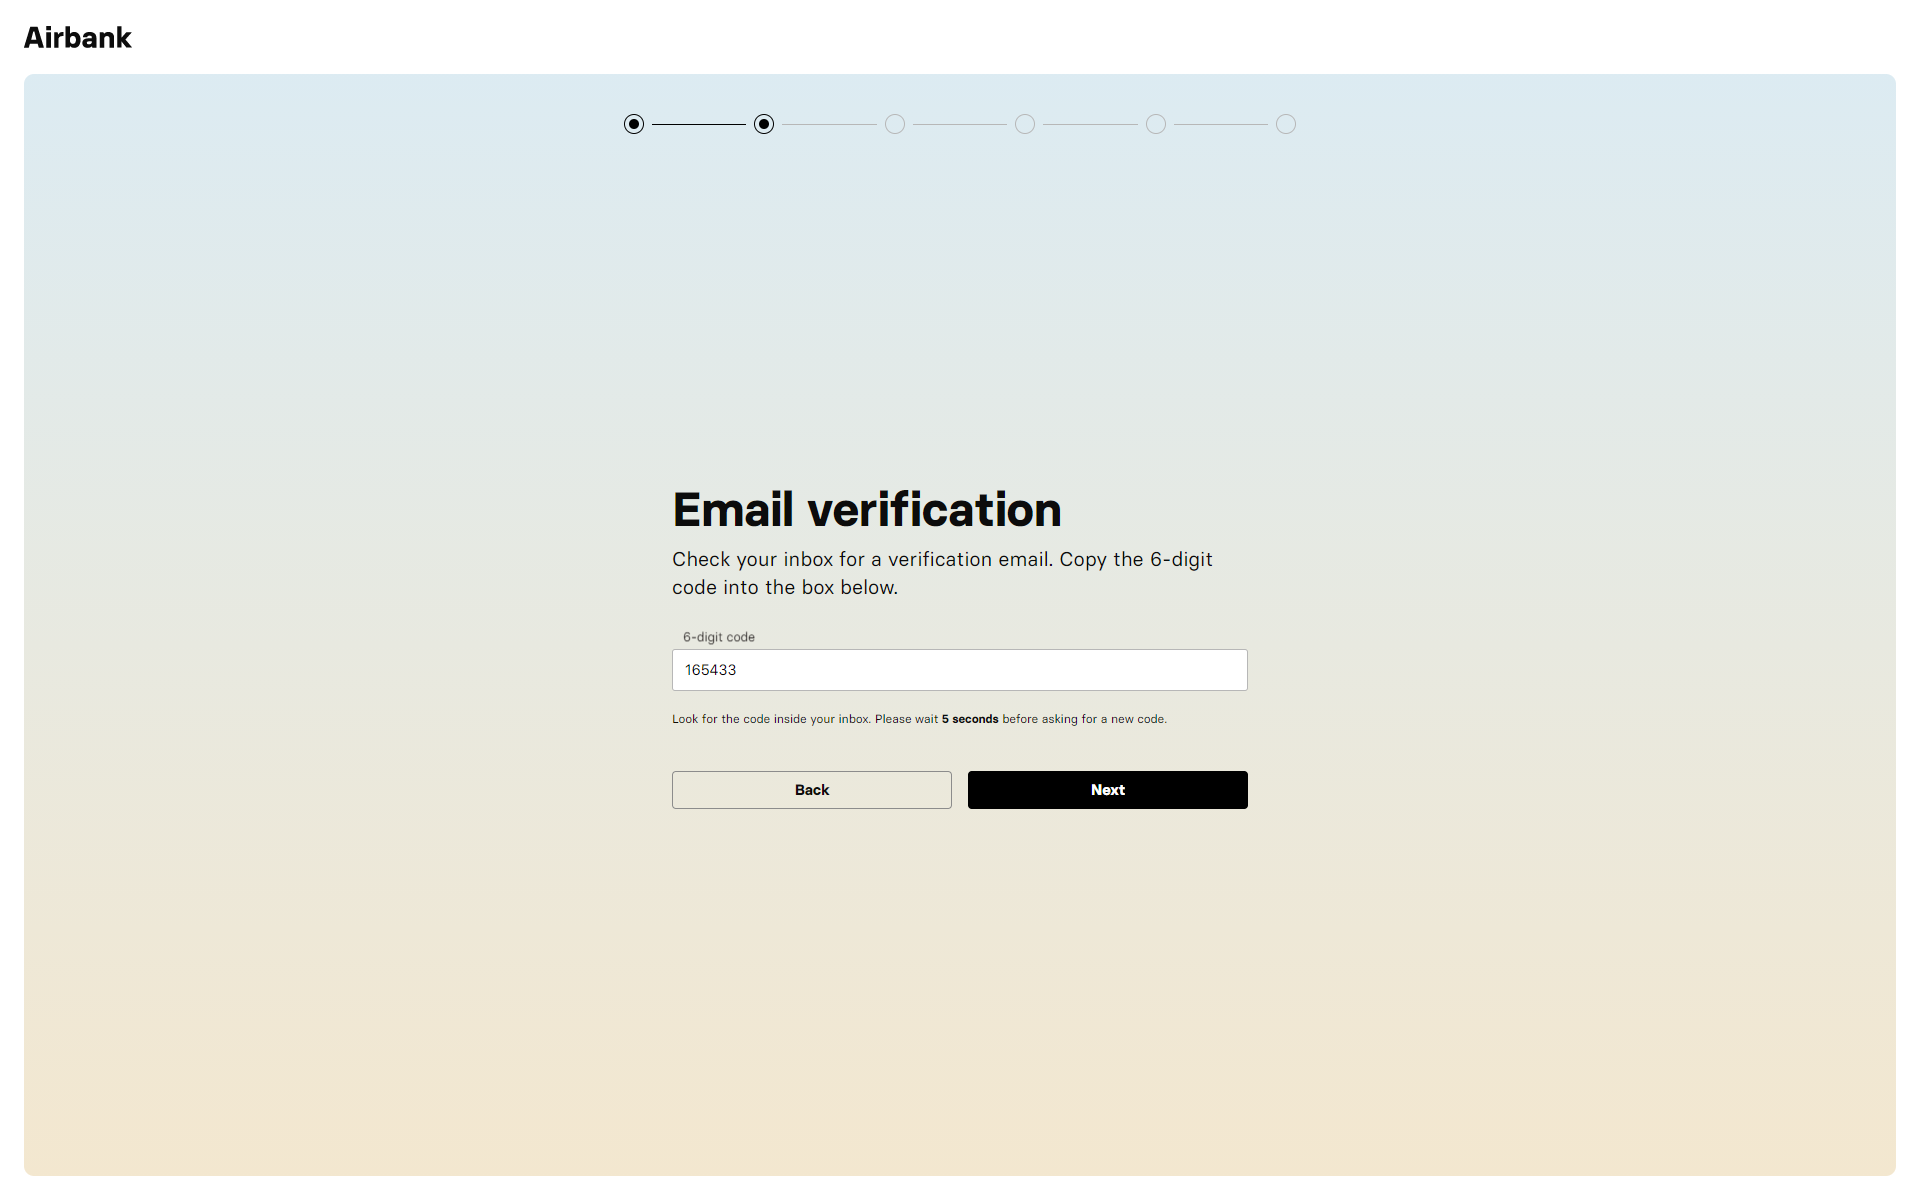 Airbank Onboarding - Email Verification